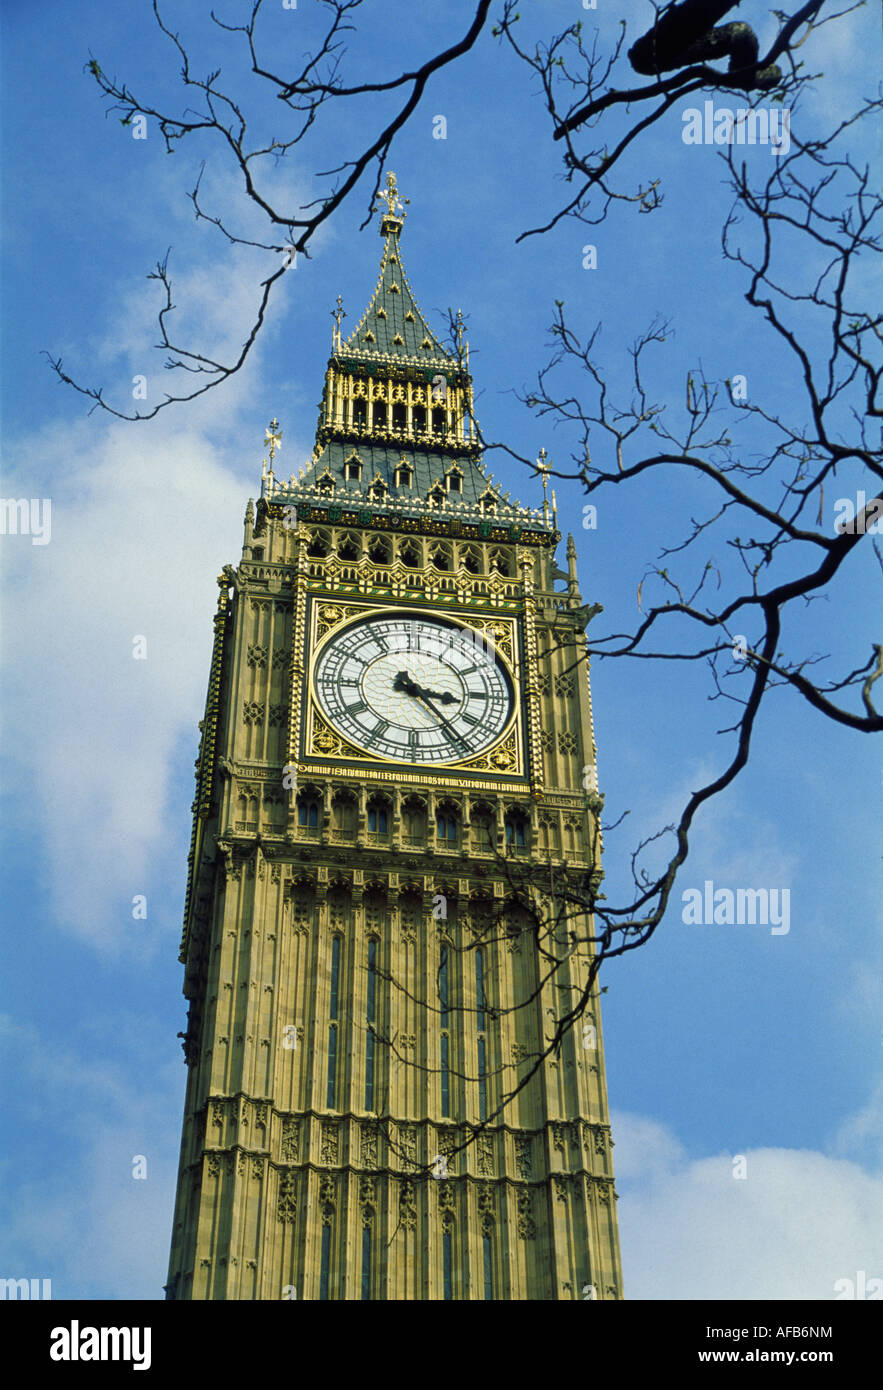 Big Ben on a sunny early spring day - Stock Image